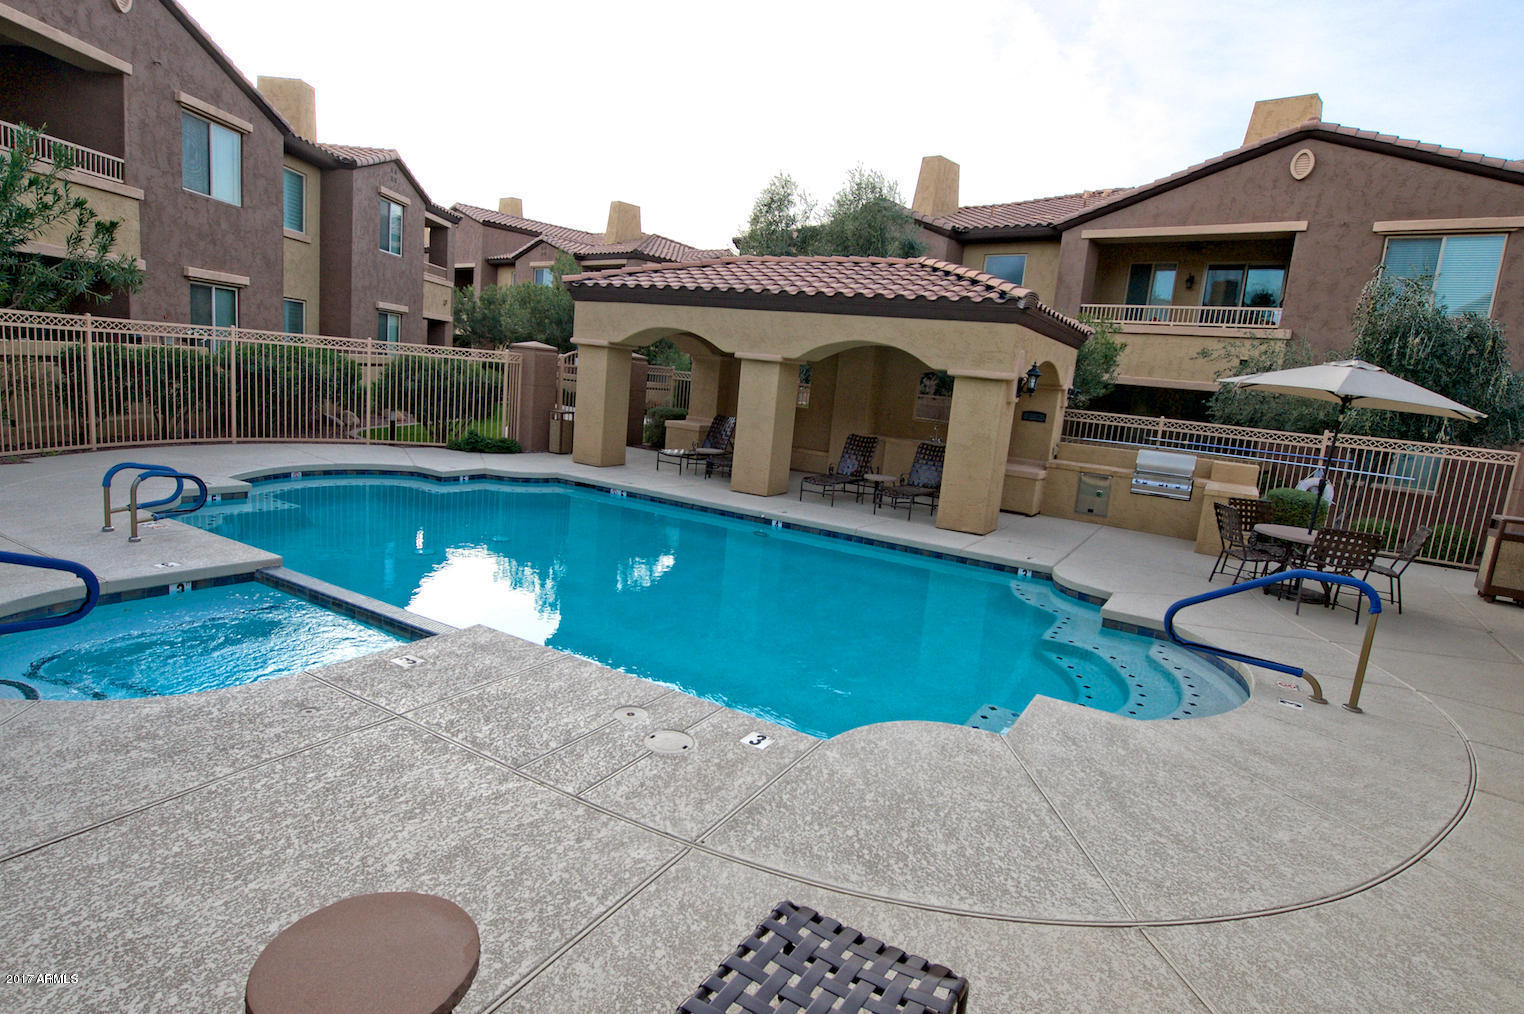 MLS 5830206 250 W QUEEN CREEK Road Unit 143, Chandler, AZ 85248 Chandler AZ Carino Estates